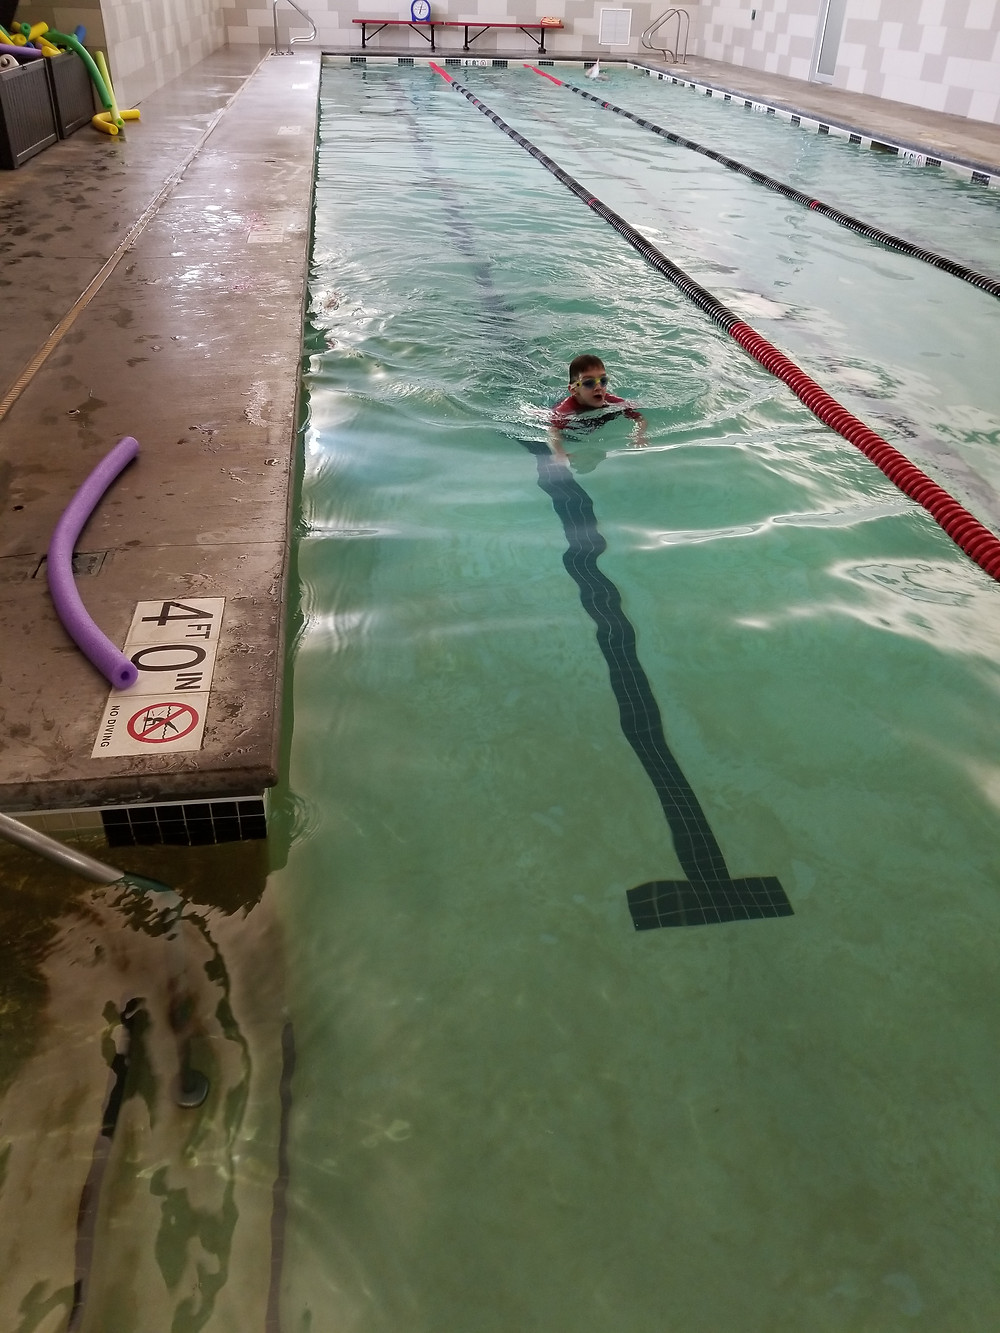 The Midwest Athletic Club's pool area in Cedar Rapids, Iowa. Bin of pool noodles in yellow, green, and blue on the left, cement pool deck around a three-lane indoor swimming pool.